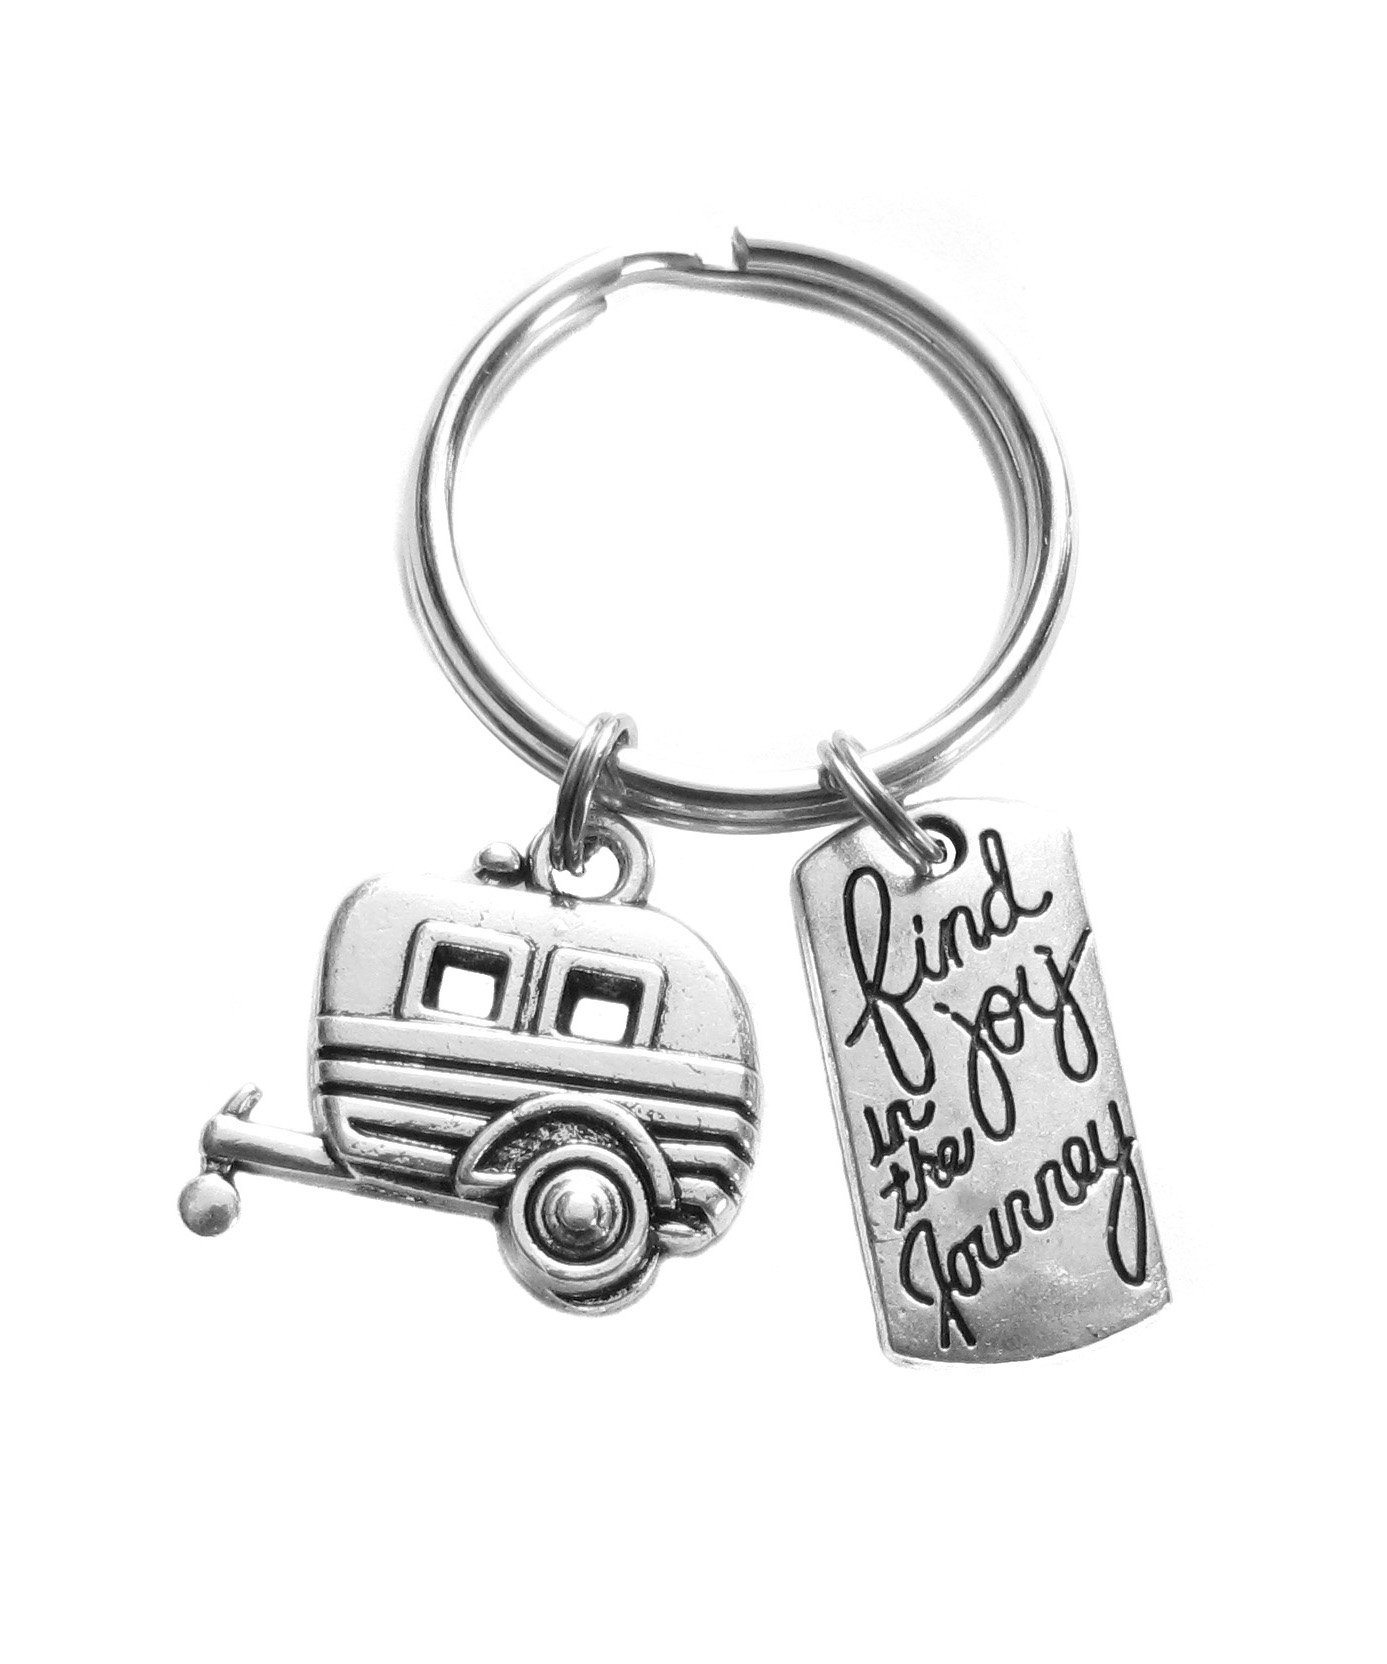 Camper Trailer RV Mini Camper Camping Find Joy in the Journey Charm Keychain Gift